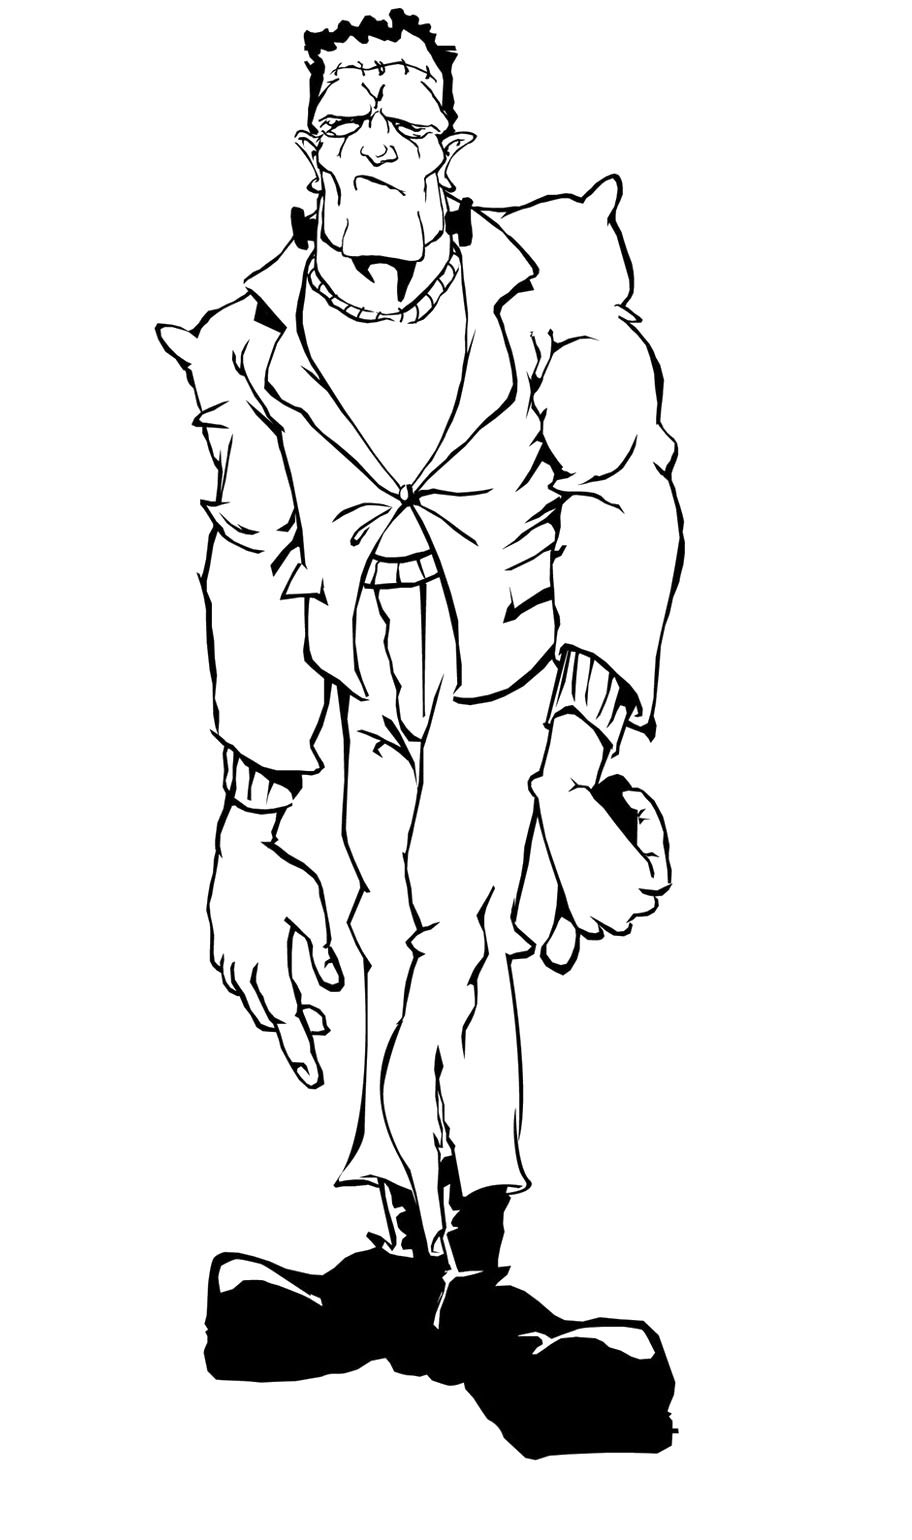 Zombie Coloring Pages For Kids  Zombie Coloring Pages